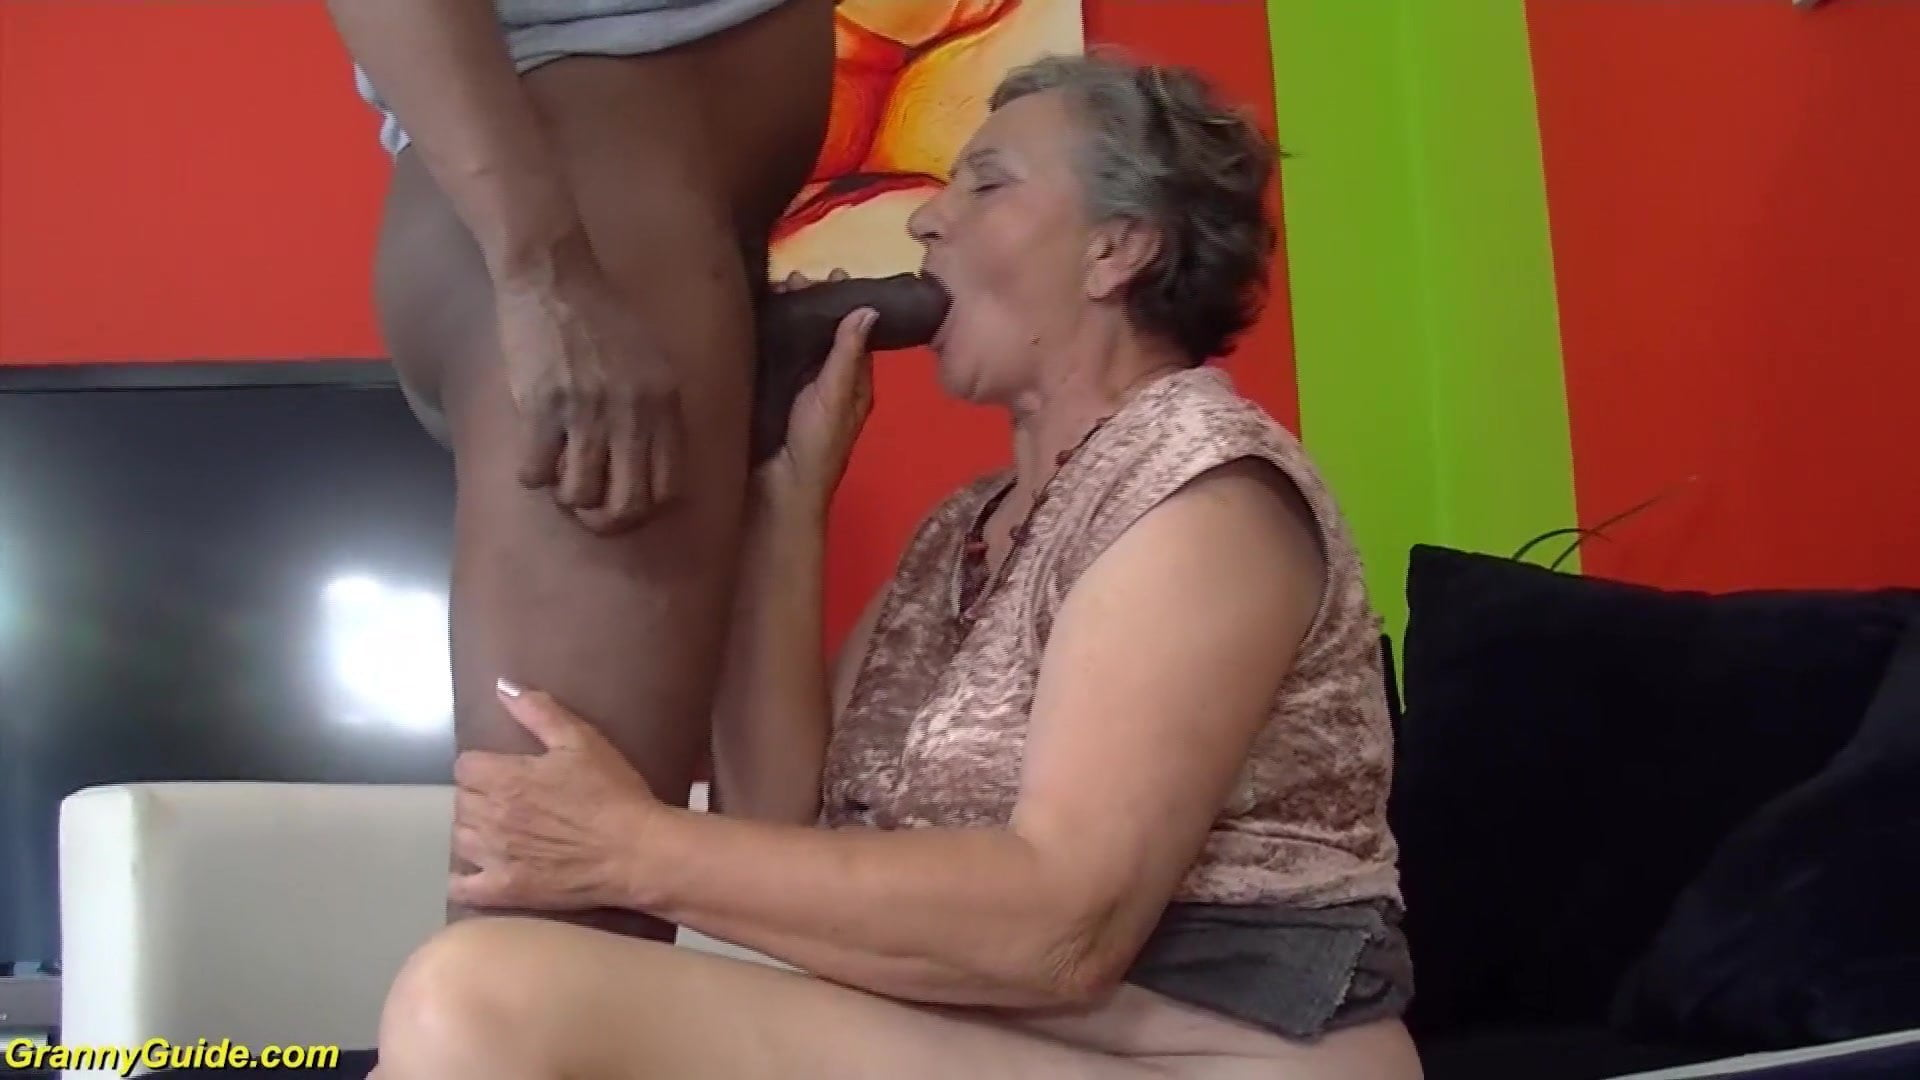 Old Granny Porn Films 80 years old granny first interracial